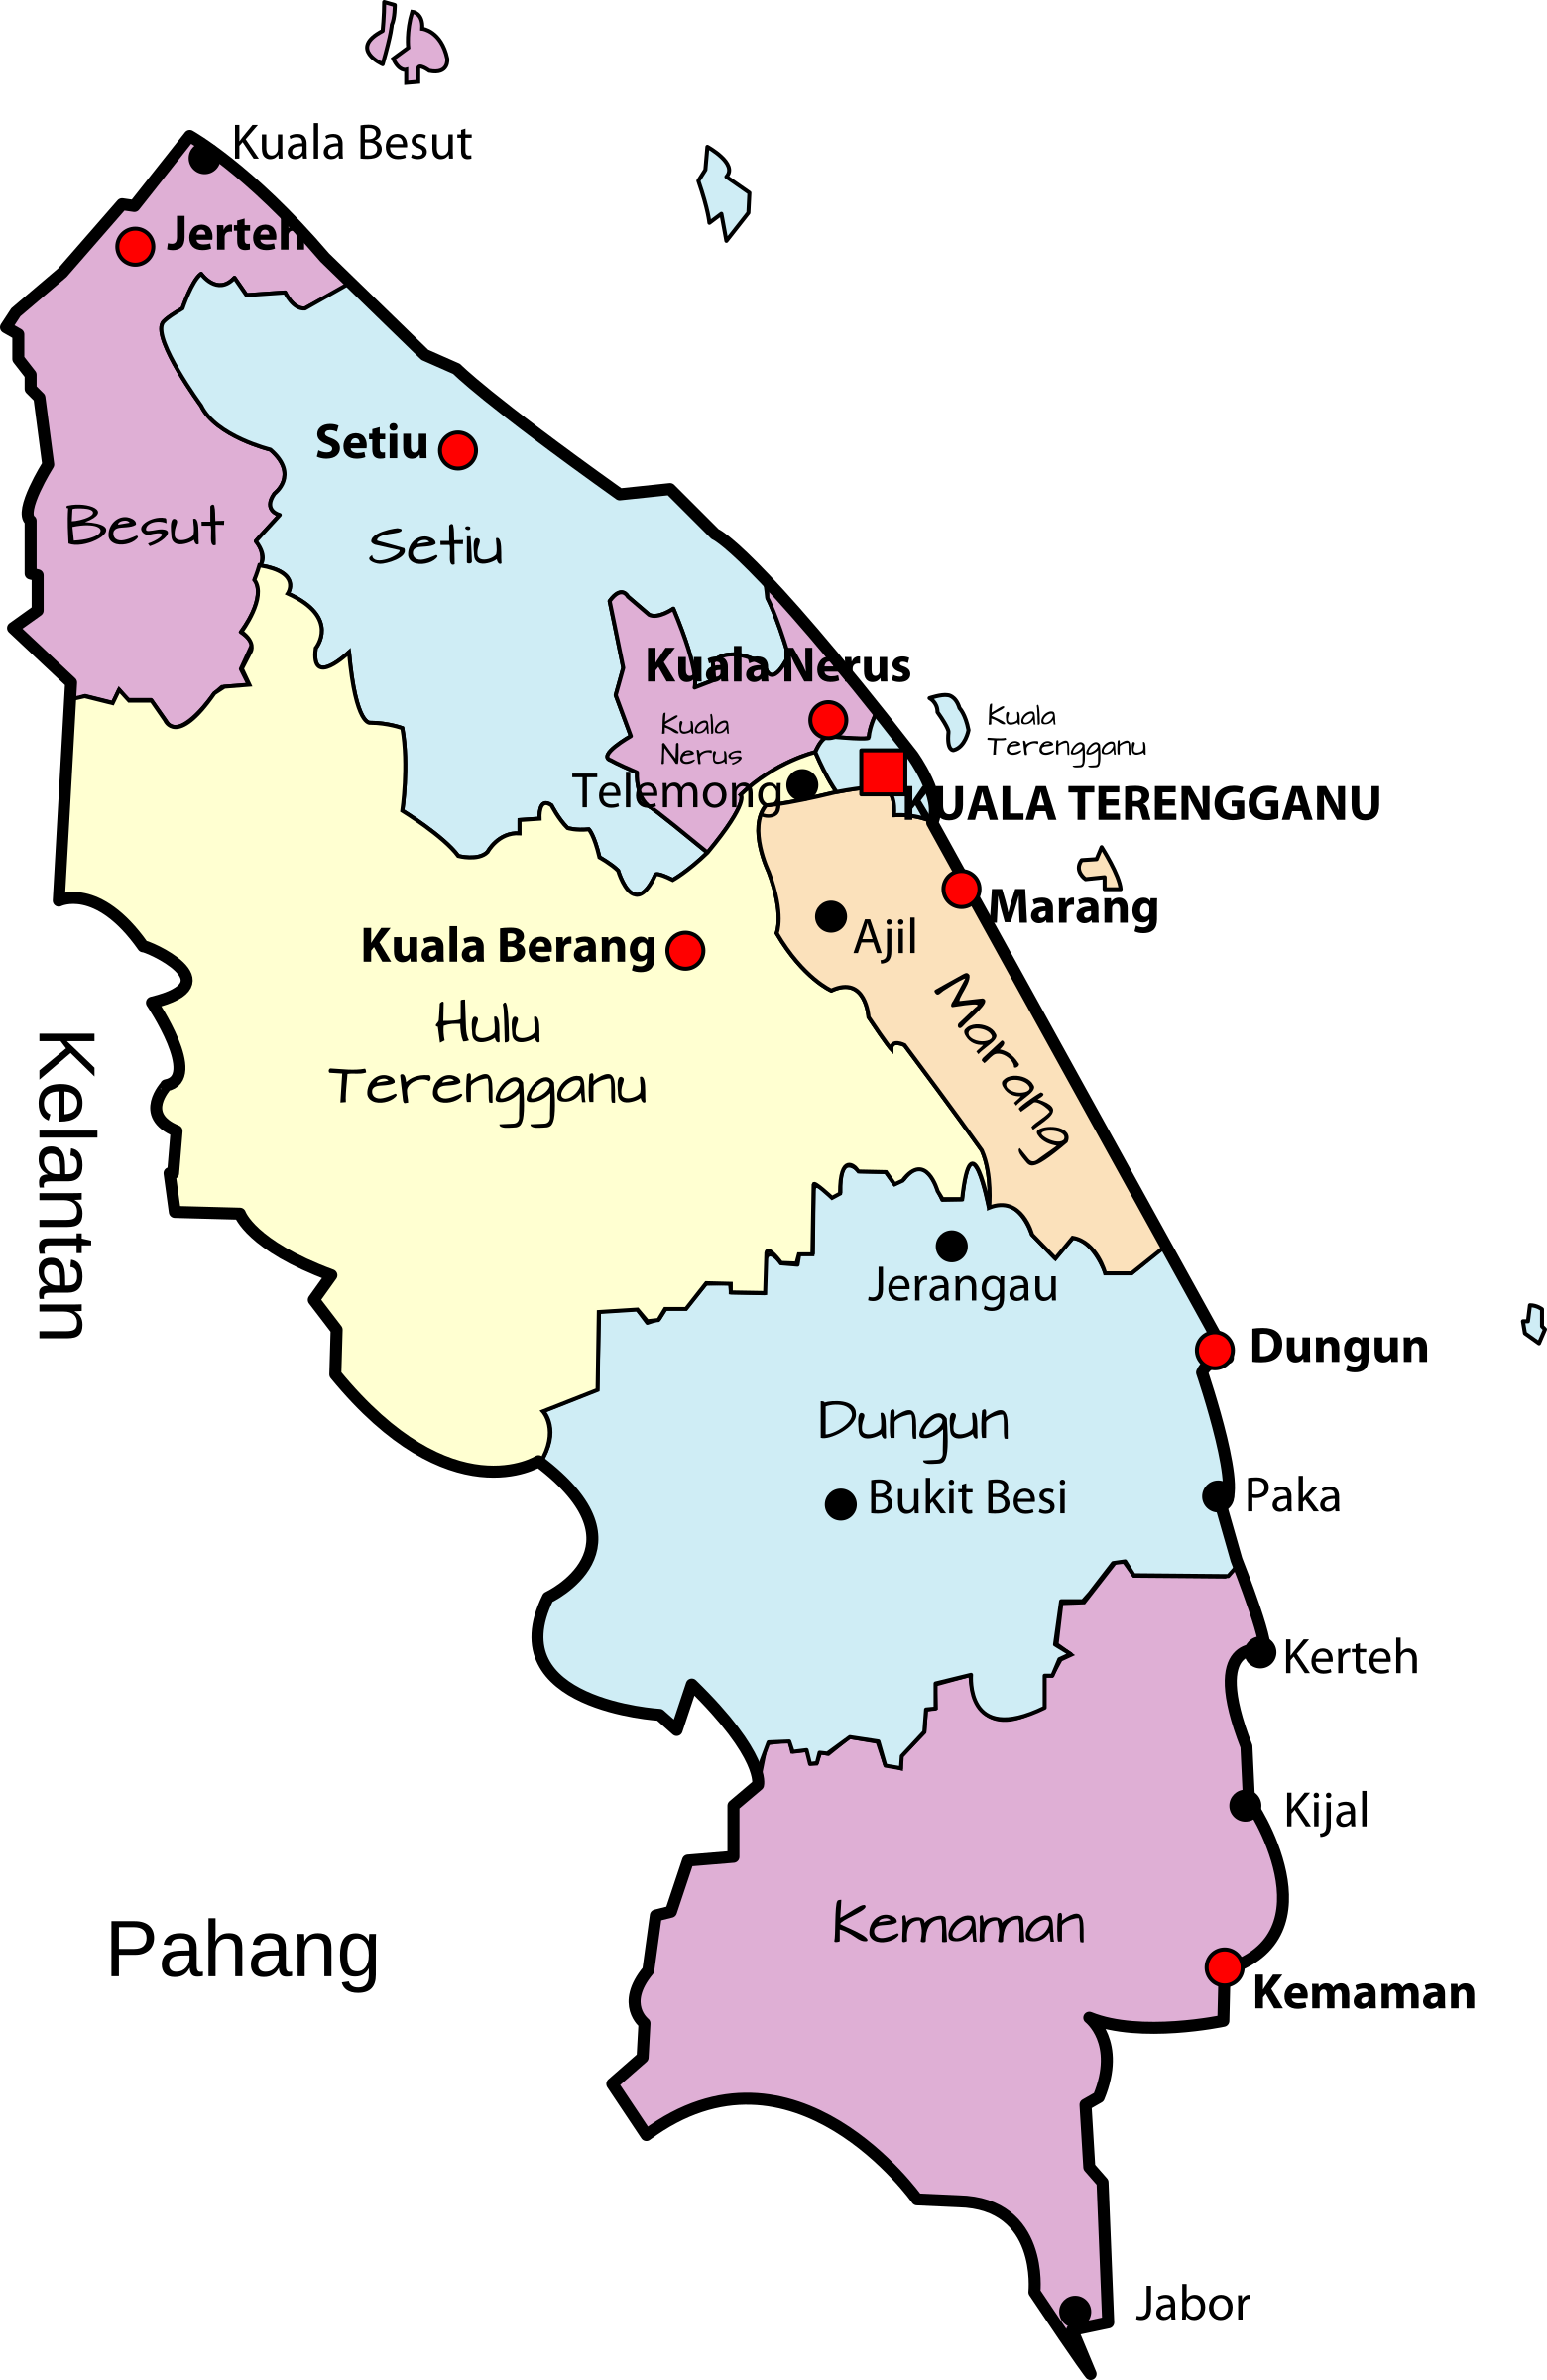 Parliamentary map of Terengganu, Malaysia by derkommander0916